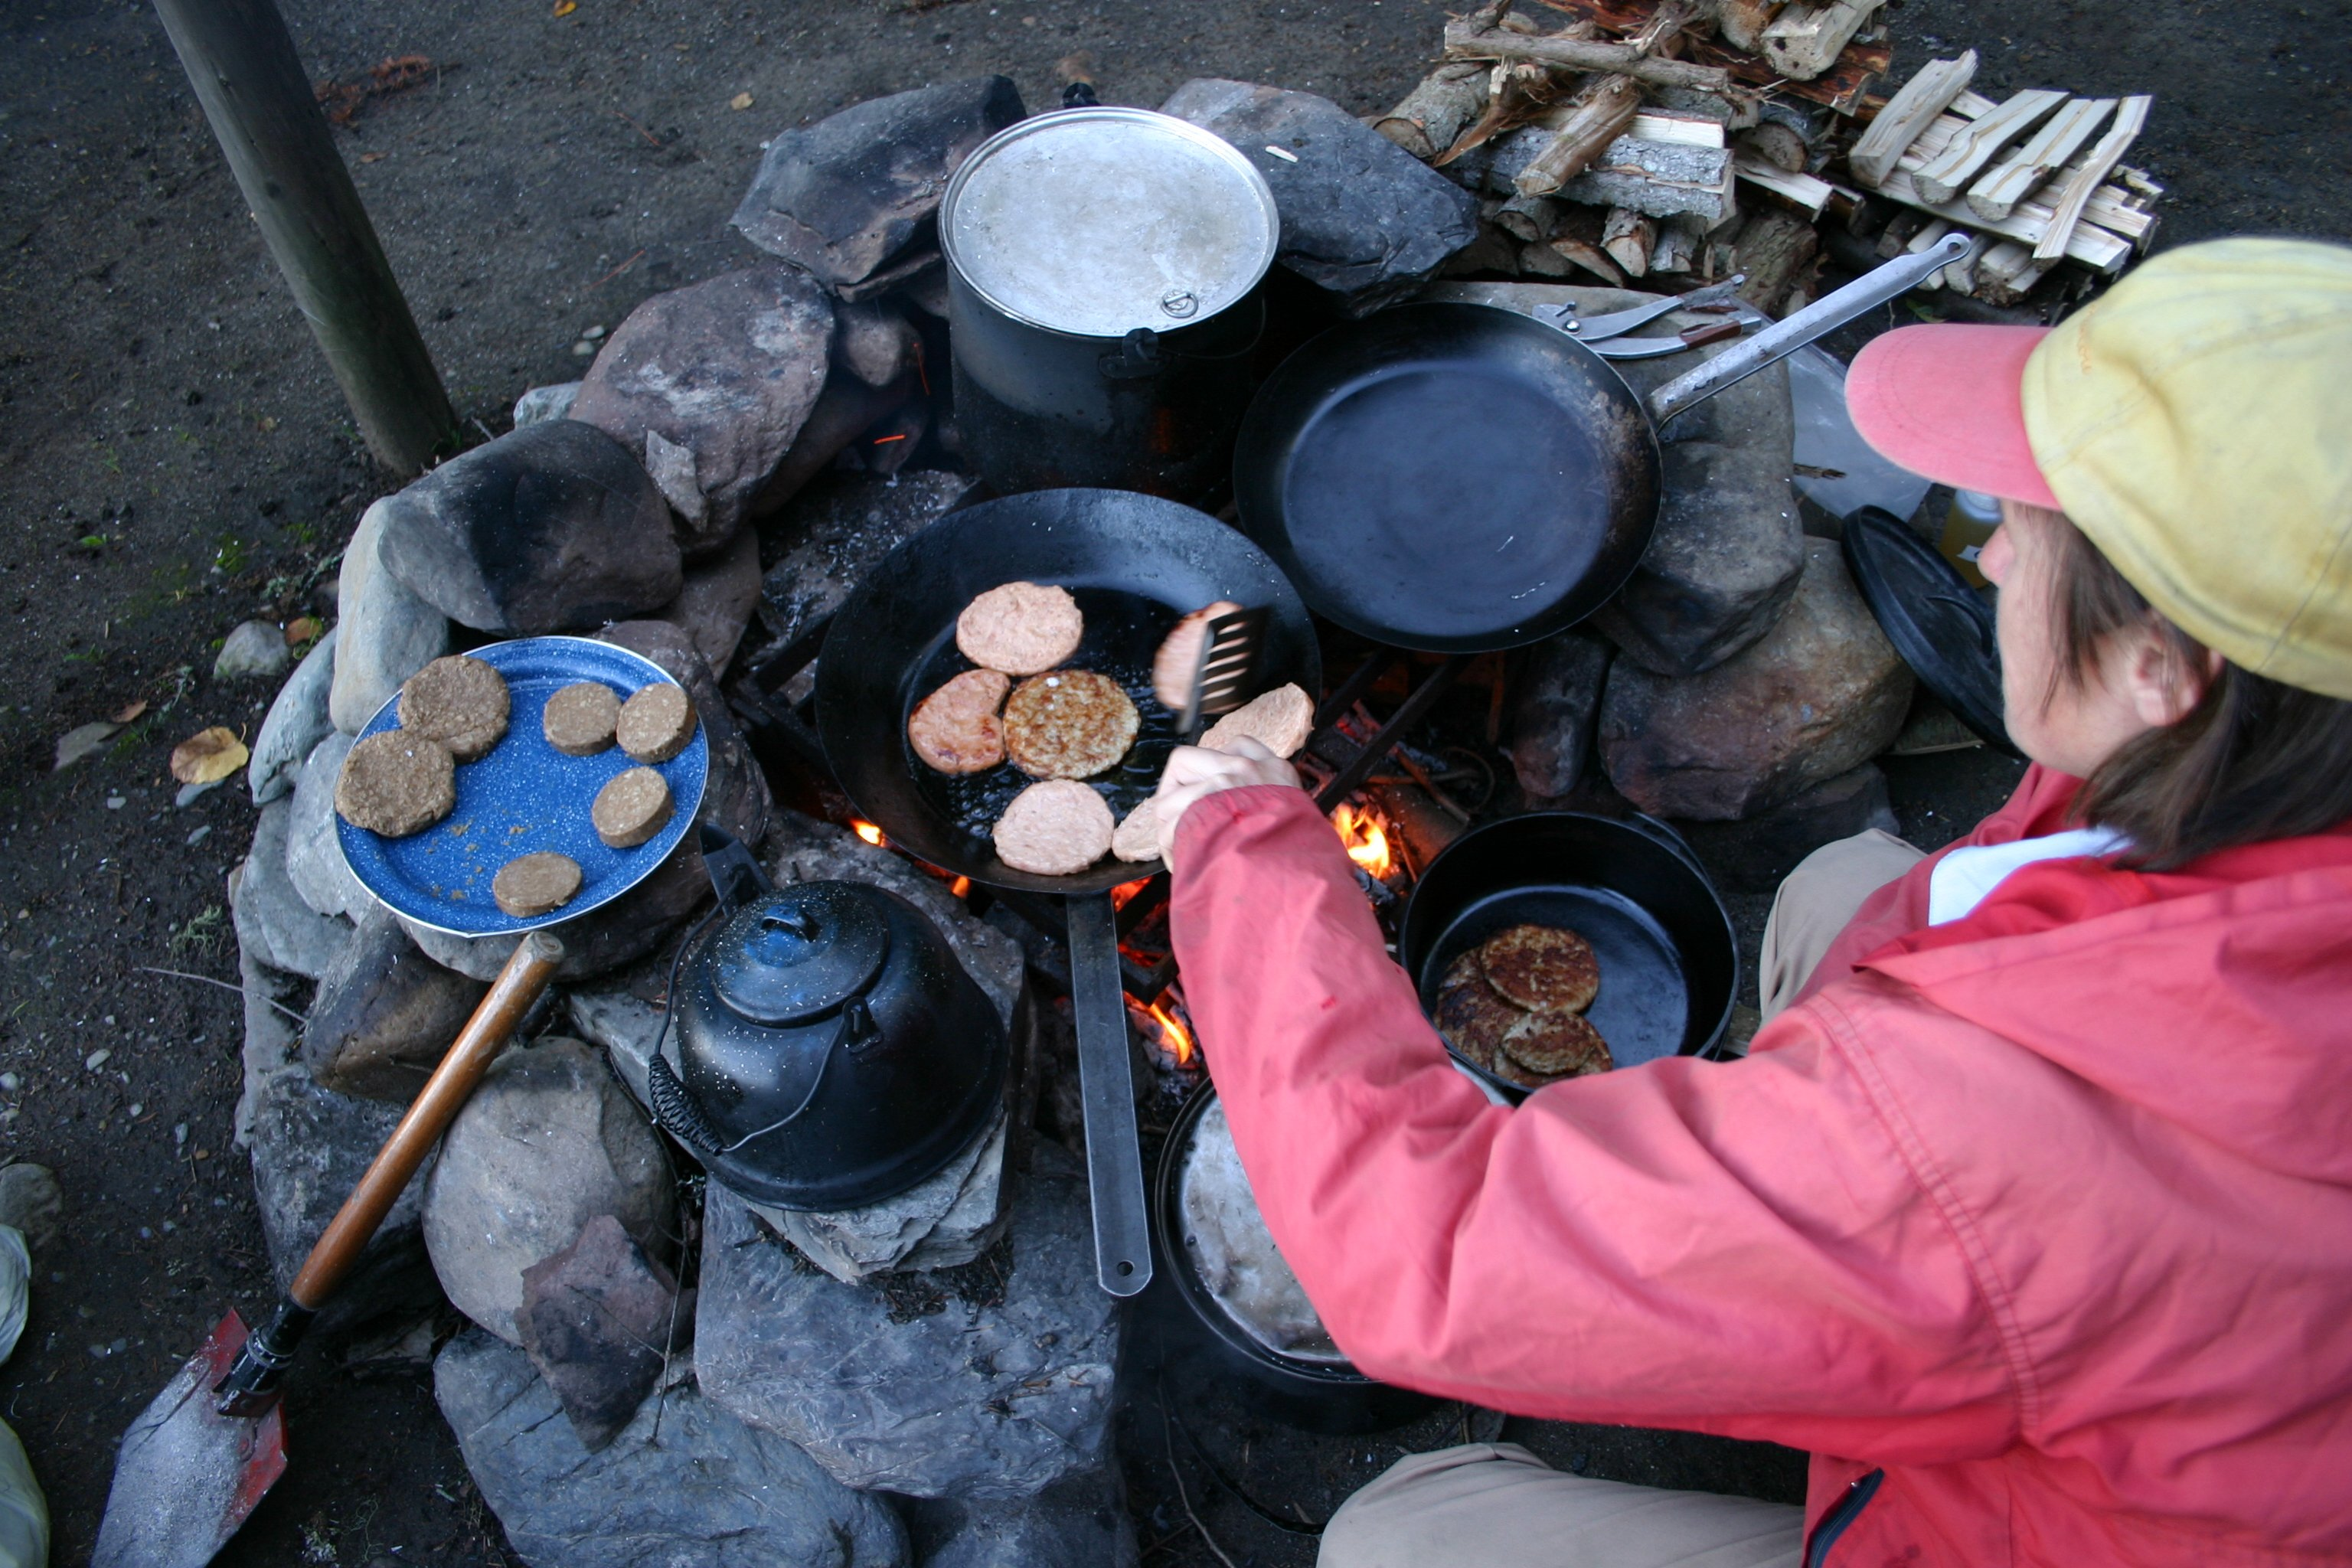 Polly fixing up a campfire breakfast.